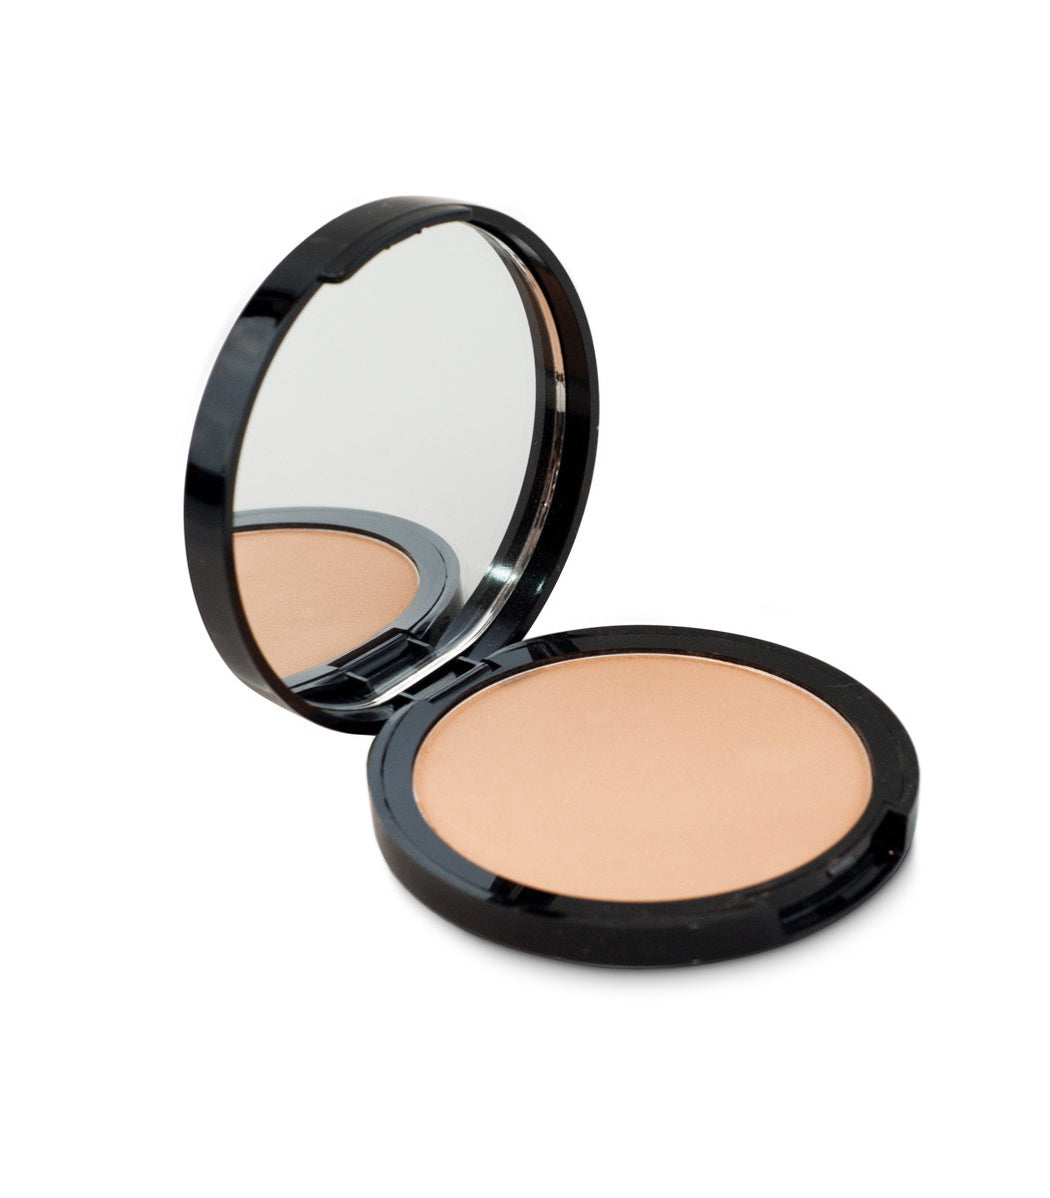 Touch Up Pro Powder